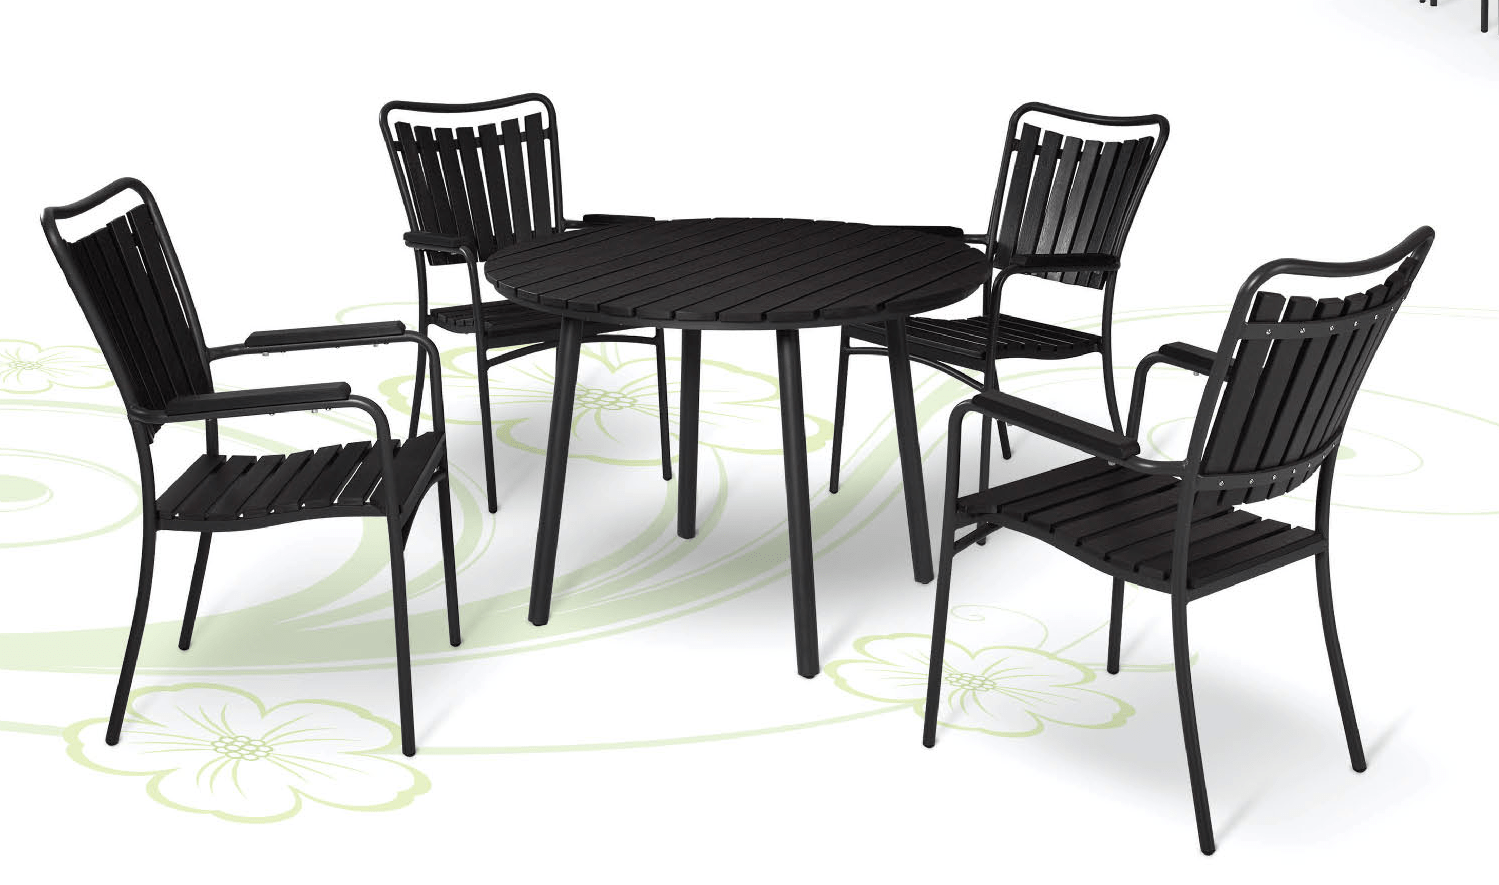 PNG Table And Chairs Transparent Table And ChairsPNG